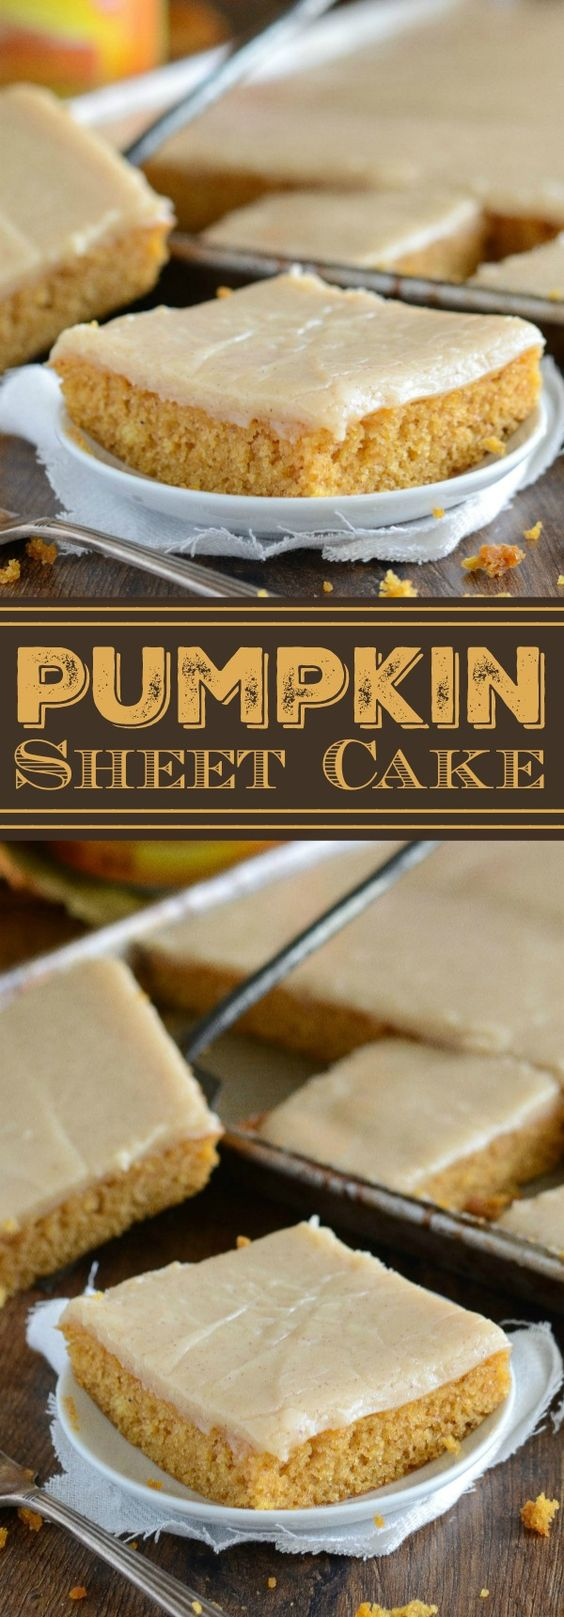 Pumpkin Sheet Cake with Cinnamon Cream Cheese Frosting Recipe via The Novice Chef - This cake only takes 30 minutes! This Pumpkin Sheet Cake is a moist spiced pumpkin cake that uses melted butter for easiness. Then you pour on some gorgeous cinnamon cream cheese frosting that sinks a little into the cake as it cools. It's pure heaven. The Best EASY Sheet Cakes Recipes - Simple and Quick Party Crowds Desserts for Holidays, Special Occasions and Family Celebrations #sheetcakerecipes #sheetcake #sheetcakes #cakerecipes #cakes #dessertforacrowd #partydesserts #christmasdesserts #thanksgivingdesserts #newyearseve #birthdaydesserts